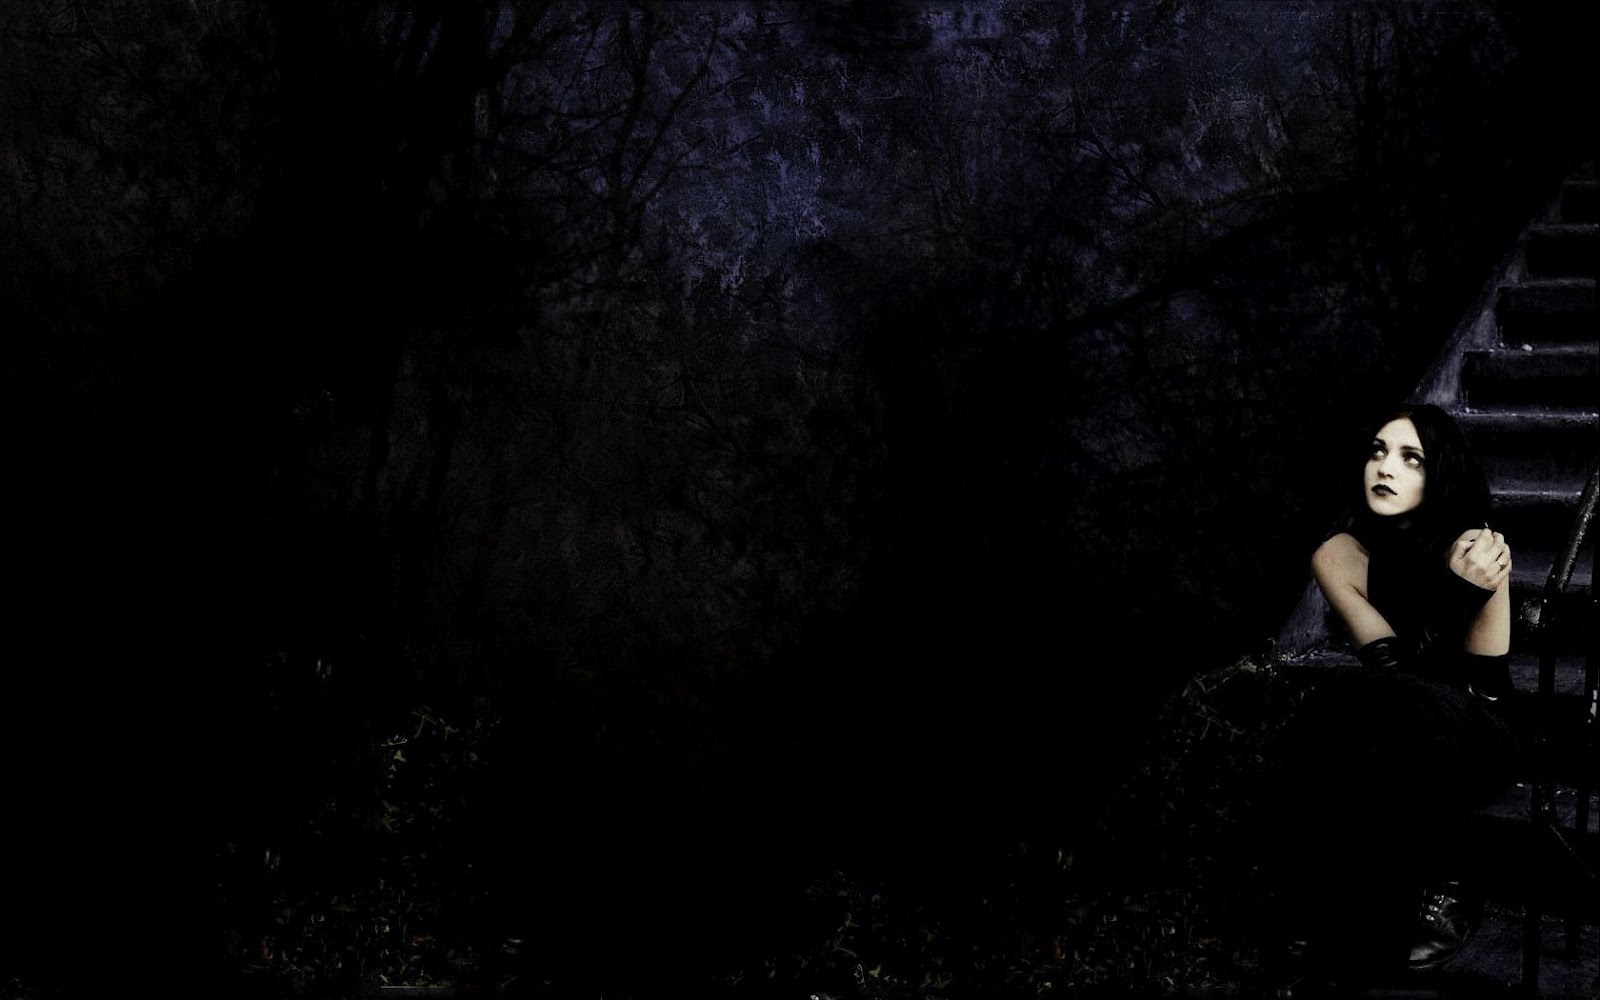 scary gothic rare wallpaper - photo #4